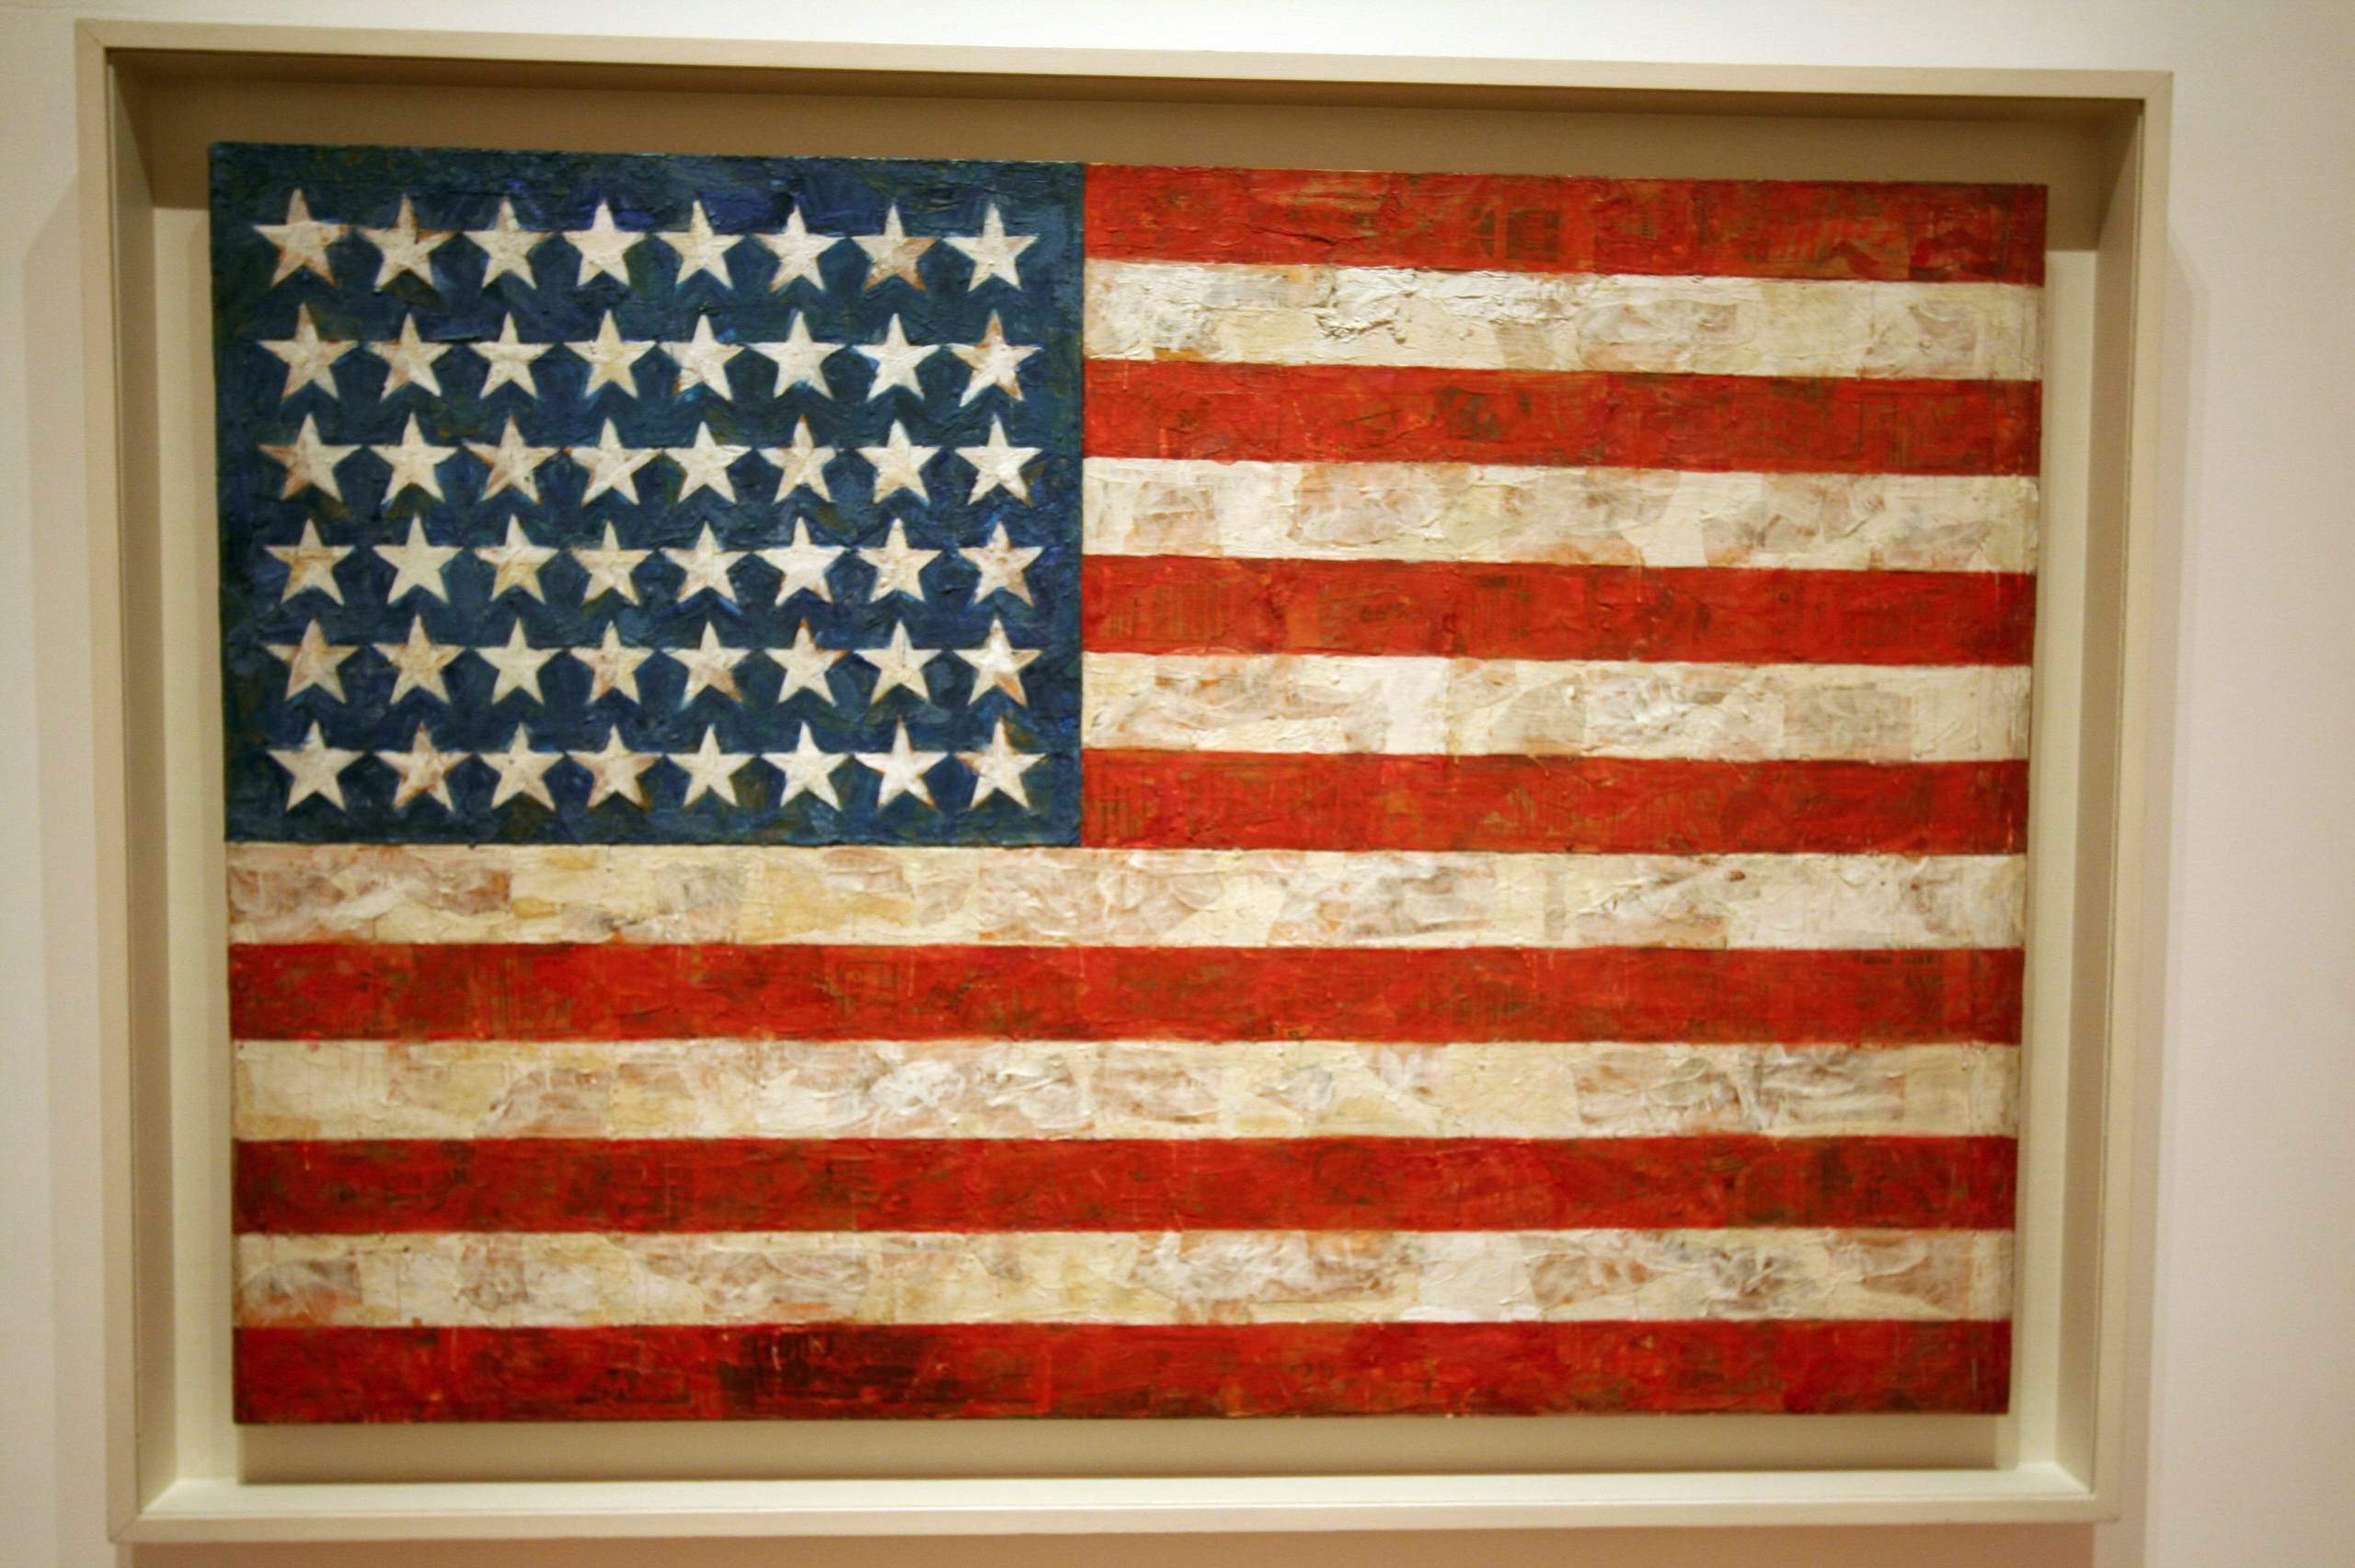 Jasper Johns, 'Flag', encaustic, oil, and collage on fabric mounted on plywood